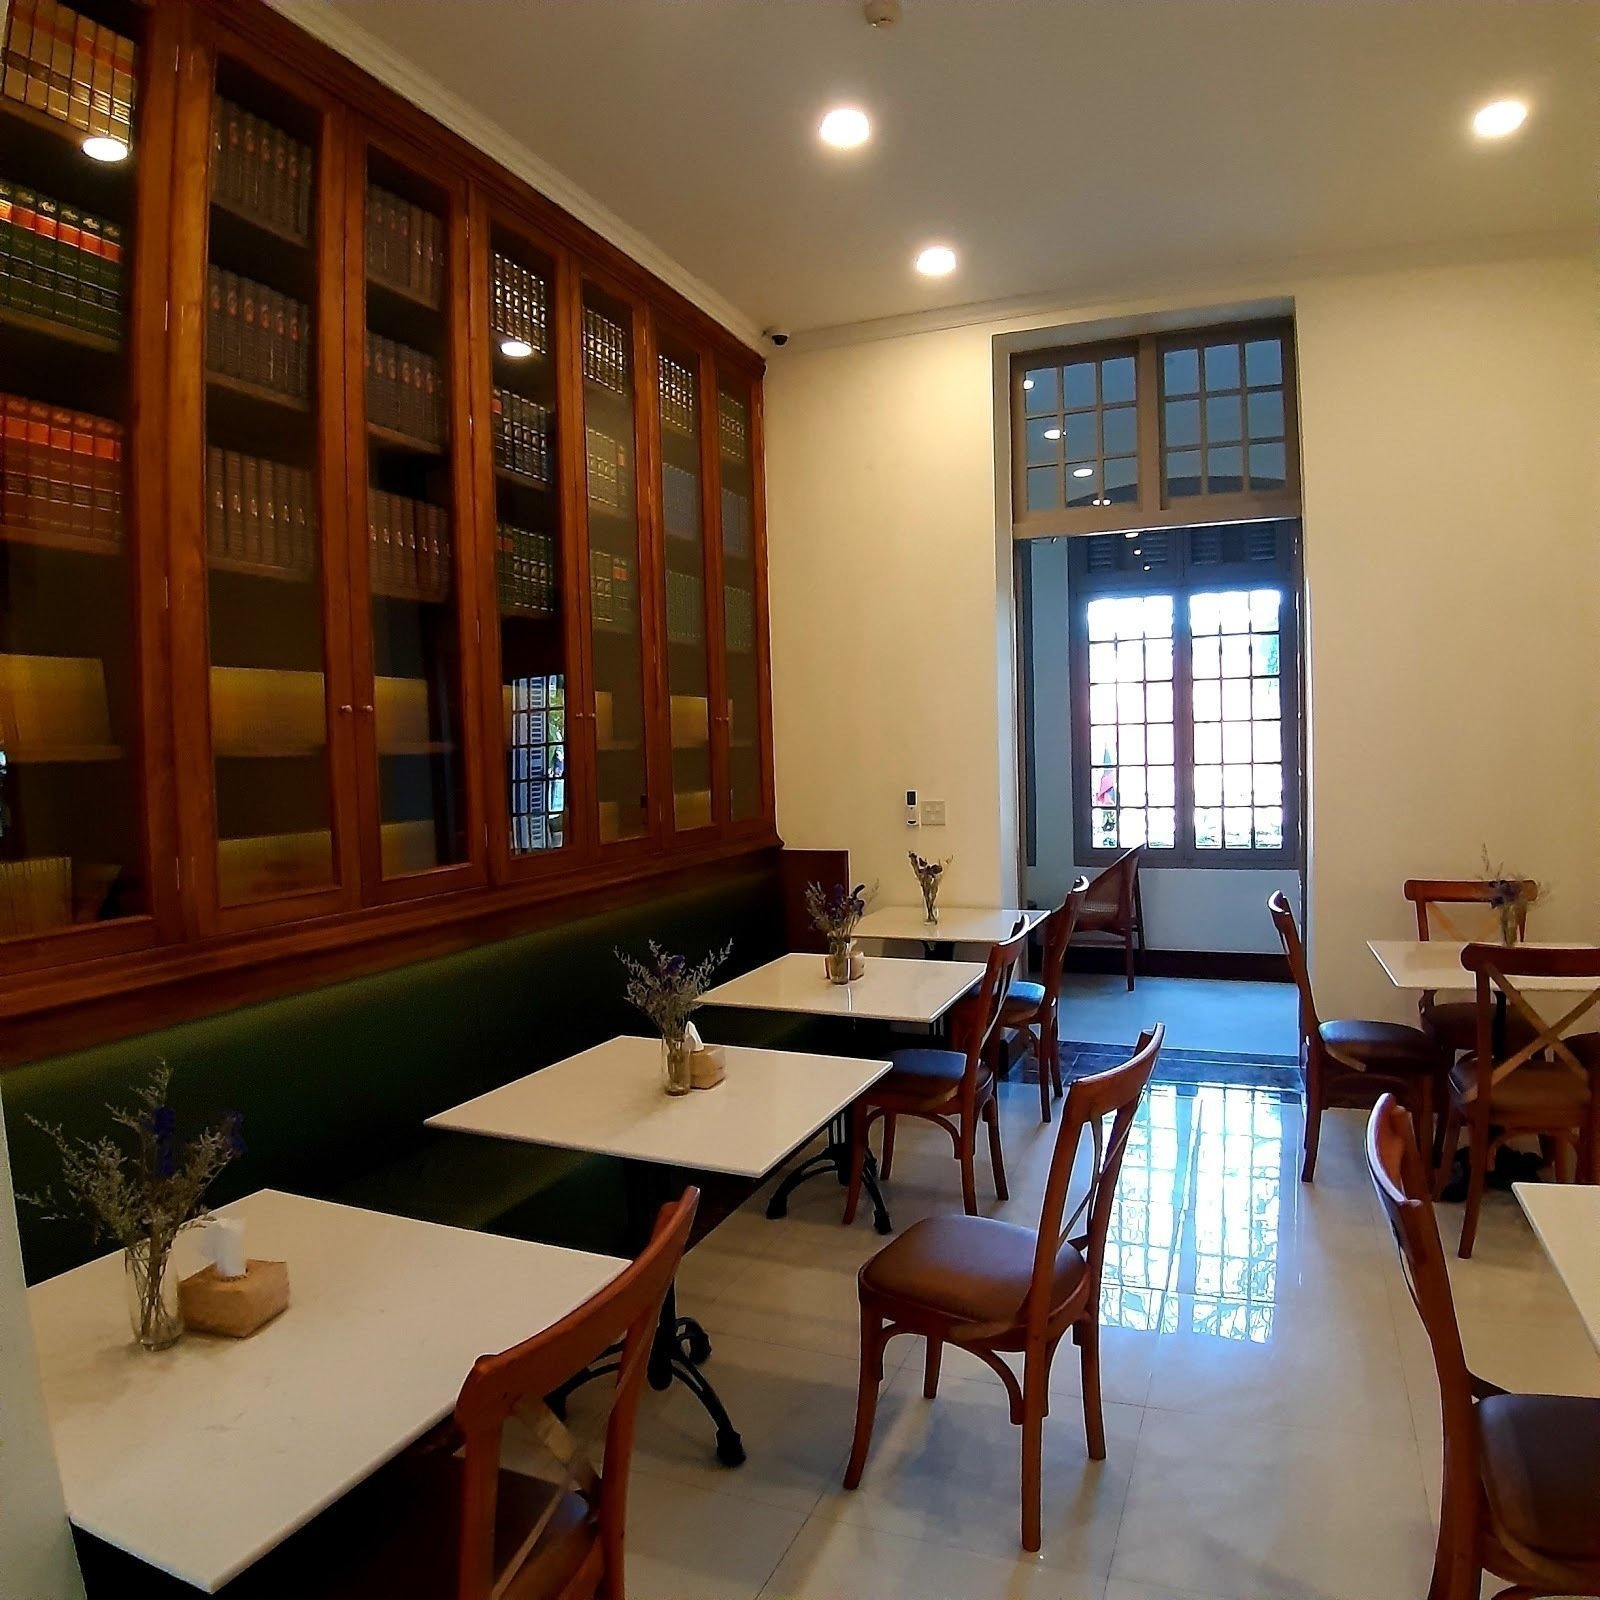 The Living Library Restaurant: A Work-Friendly Place in Vientiane